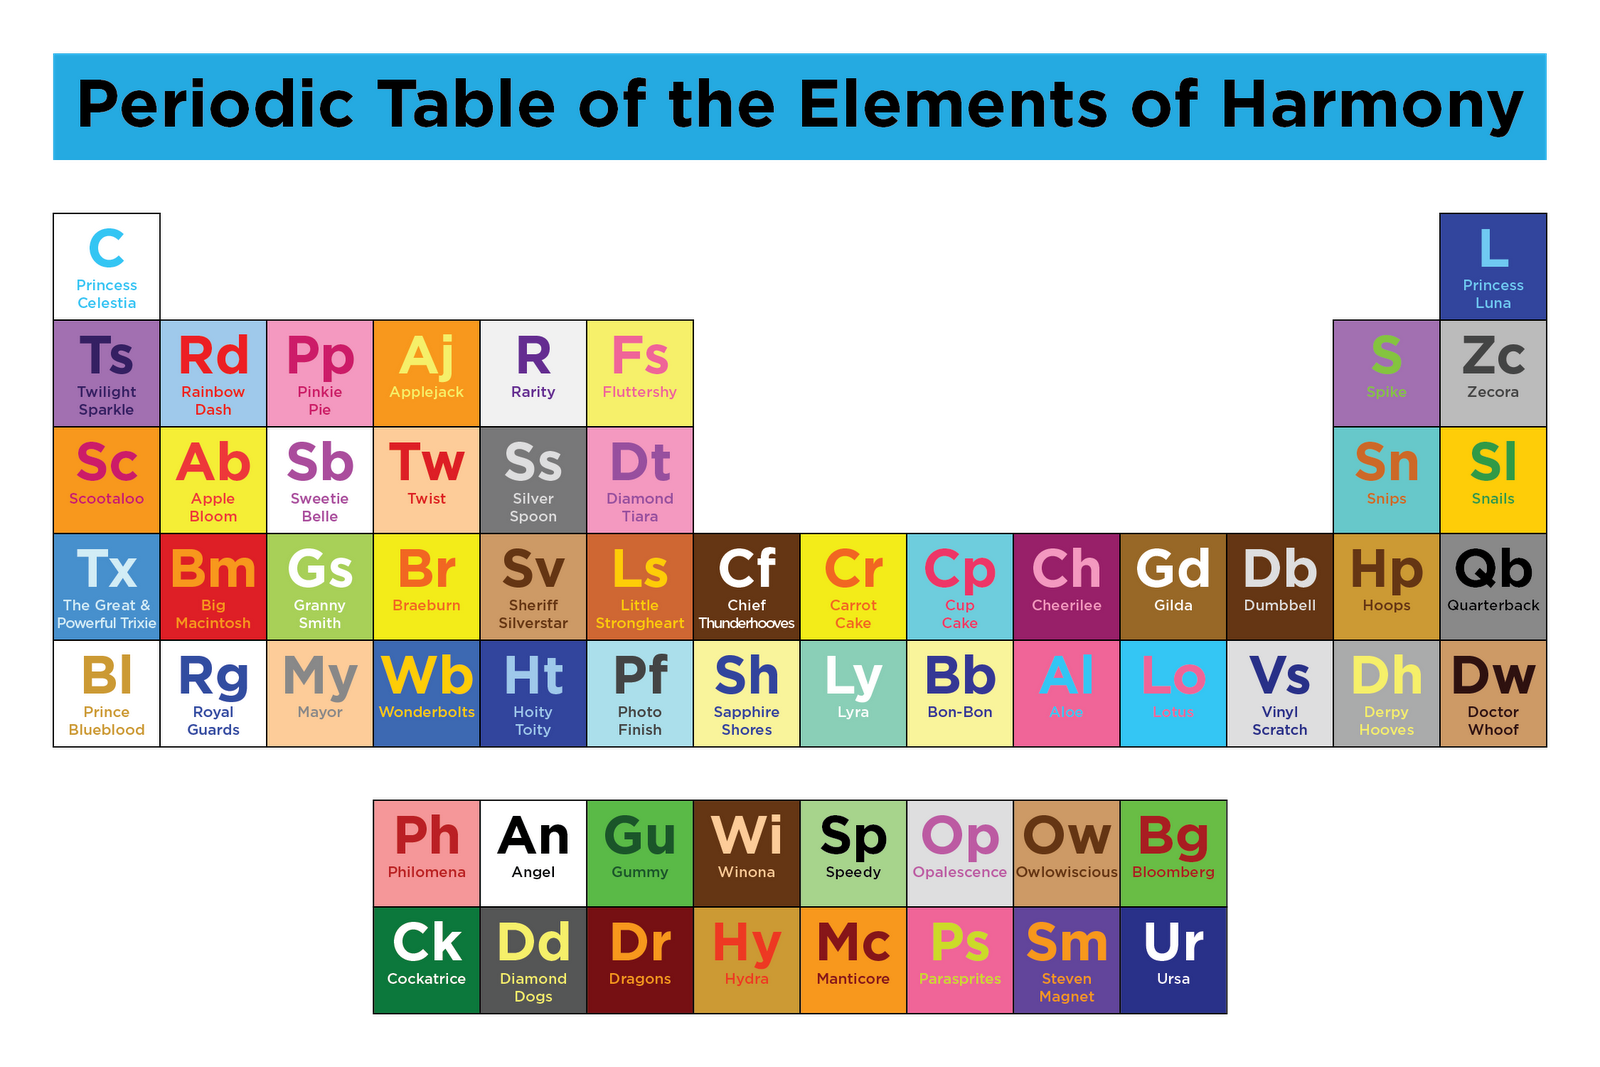 Image 759868 periodic table parodies know your meme periodic table of the elements of harmony princess celestia princess luna r fs twilight sparkle rainbow urtaz Images